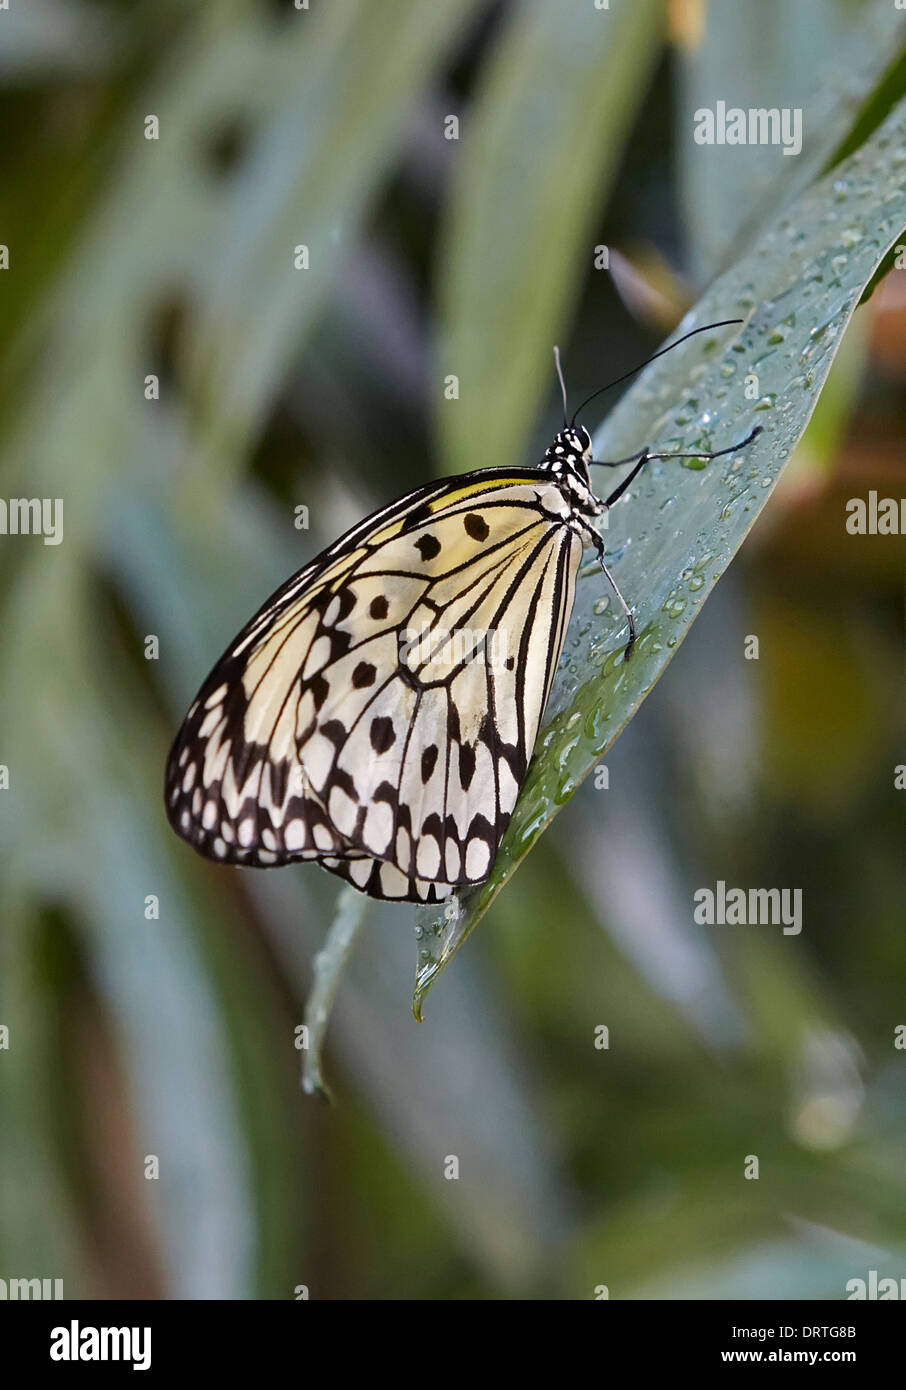 Large Tree Nymph or Paper Kite or Rice Paper butterfly Idea leuconoe from South East Asia Ventral or closed view - Stock Image